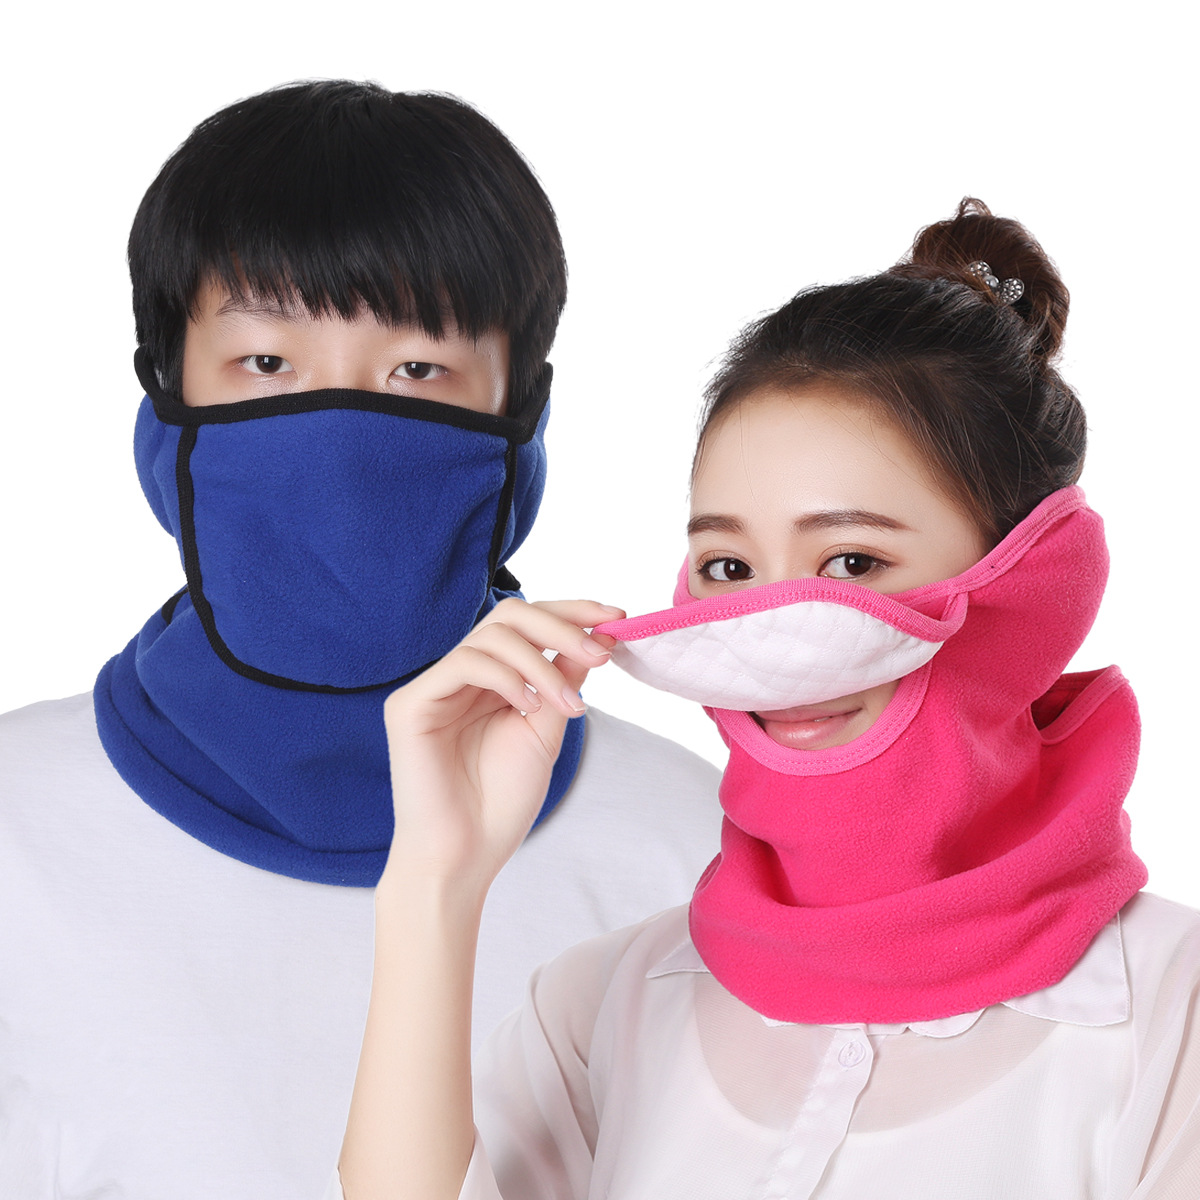 Autumn And Winter New Style Weatherization Dustproof Anti-Odor Mask Men's And Women's Universal Neck Guard Earmuff Three-in-One